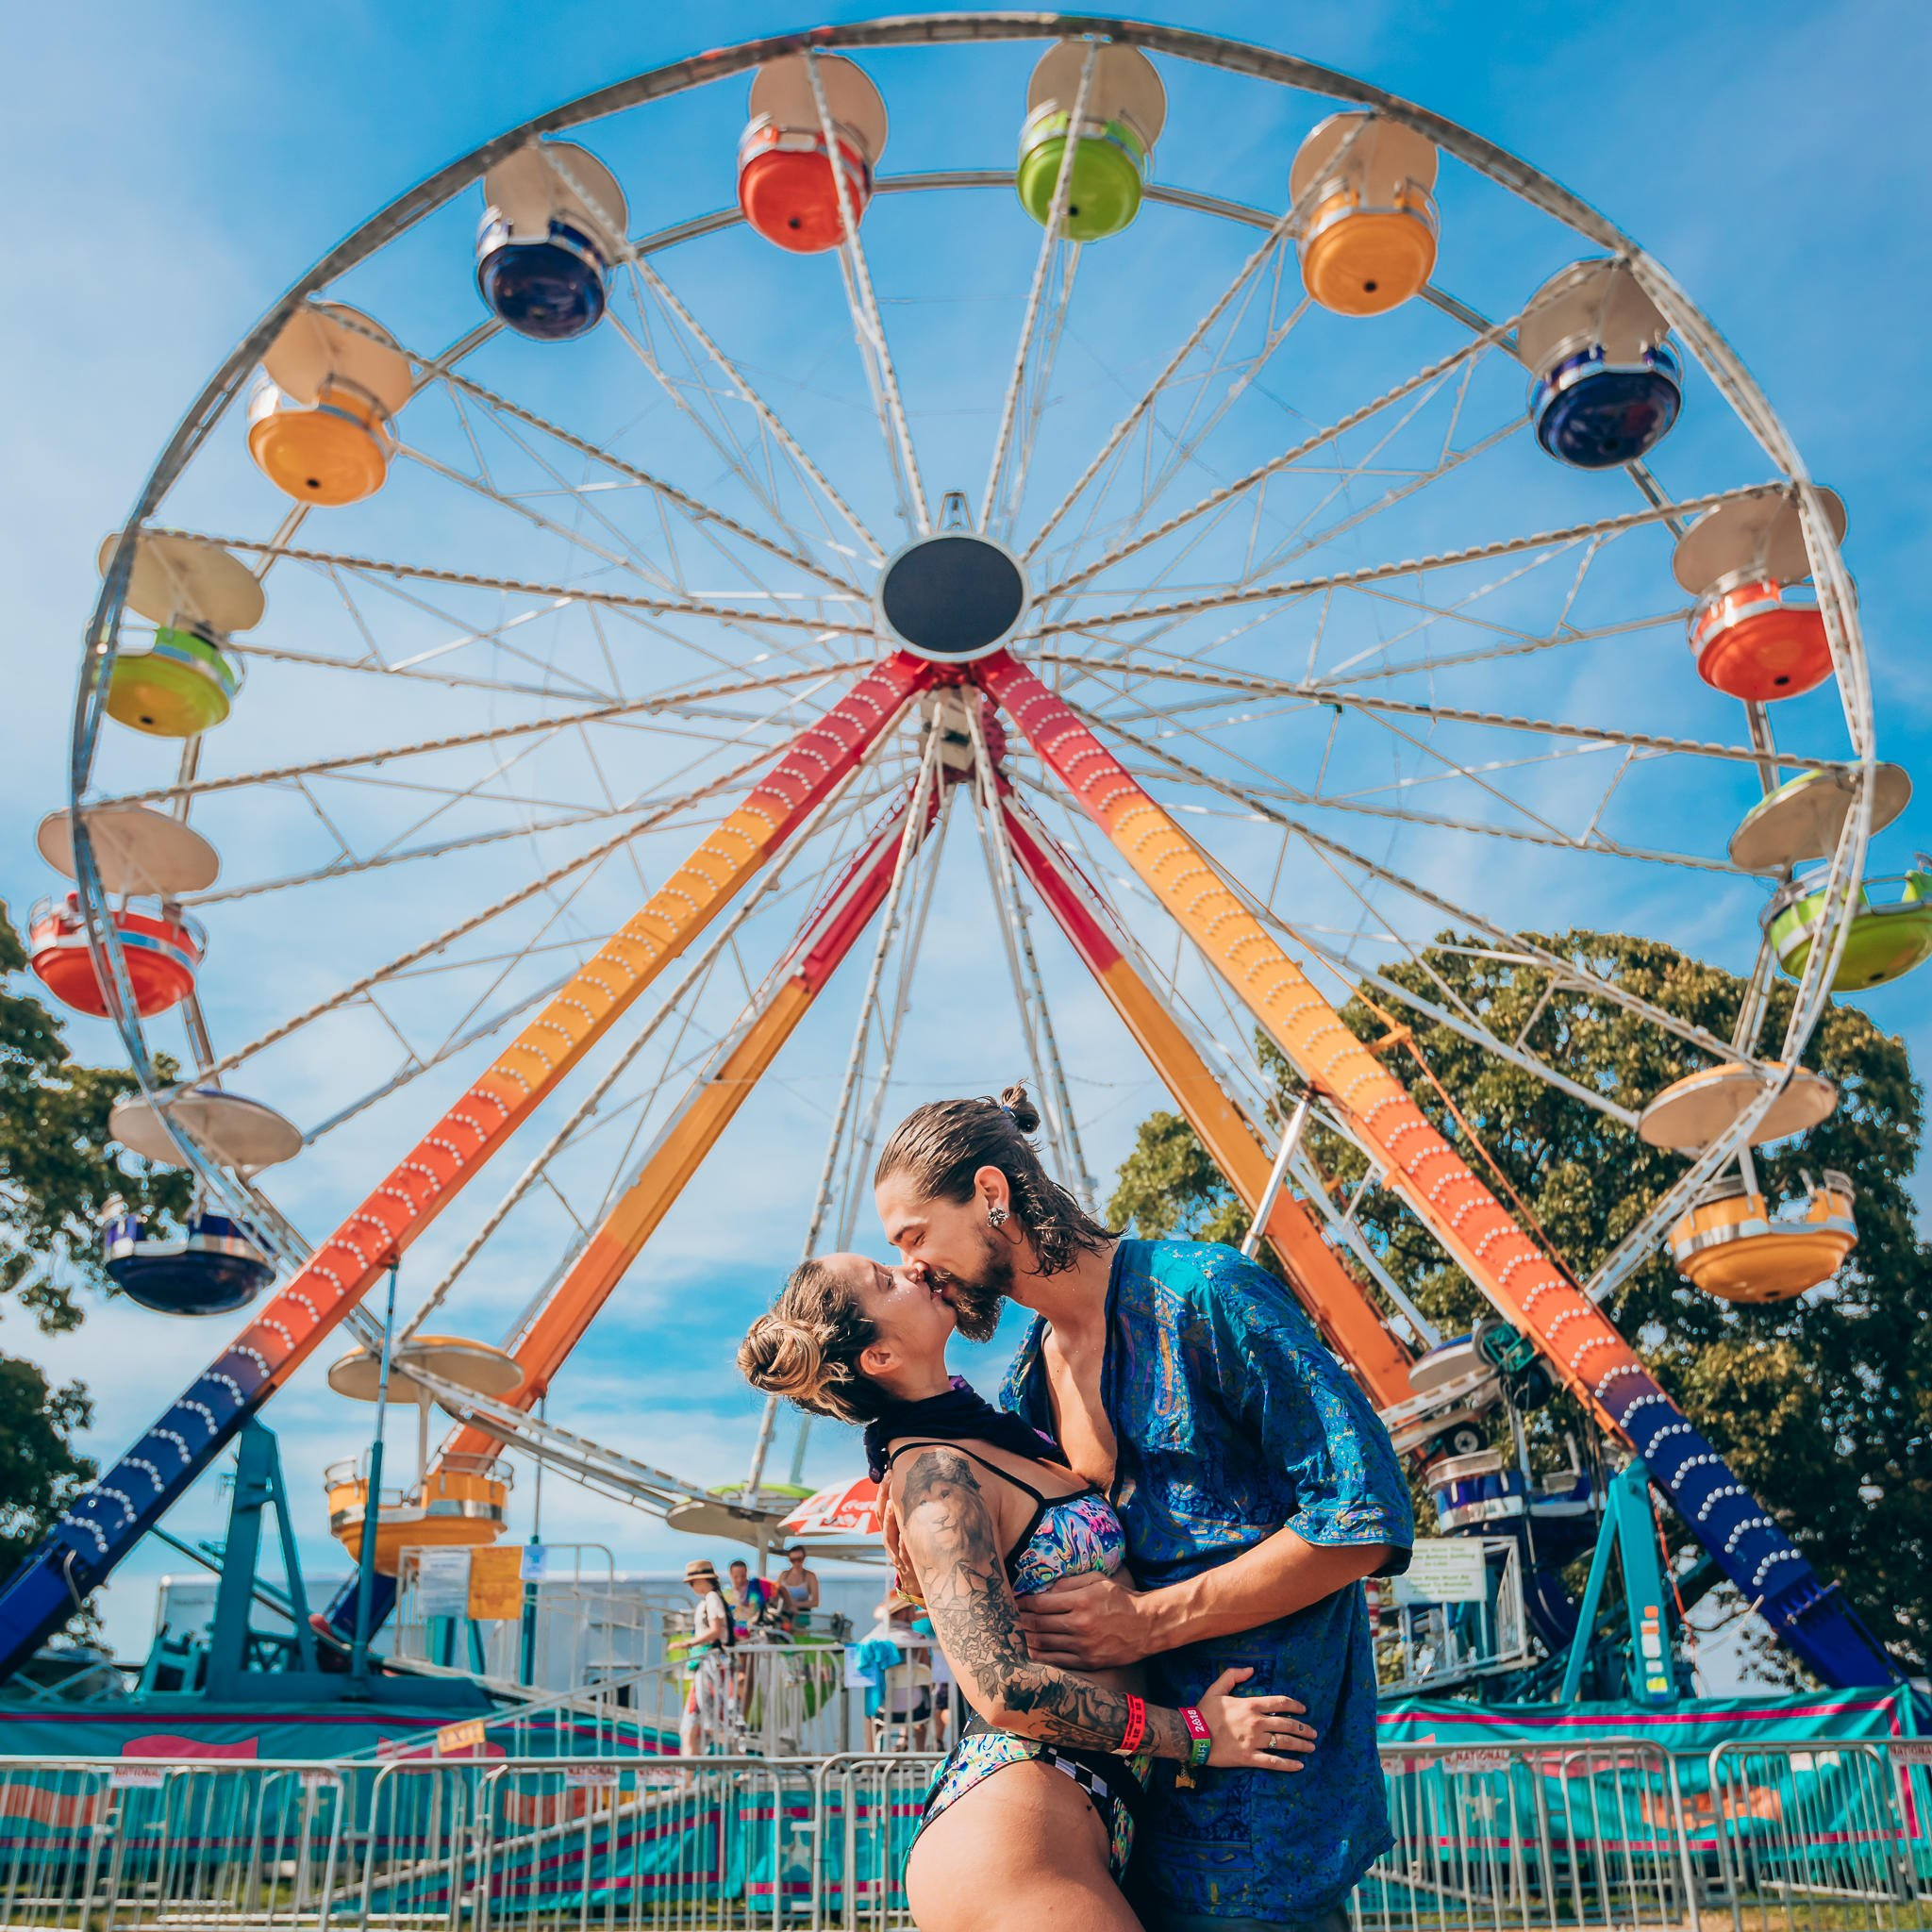 Round and round we go, and we wish this weekend would never end ❤️  Photo by @AliveCoverage https://t.co/UvtfrqXntH